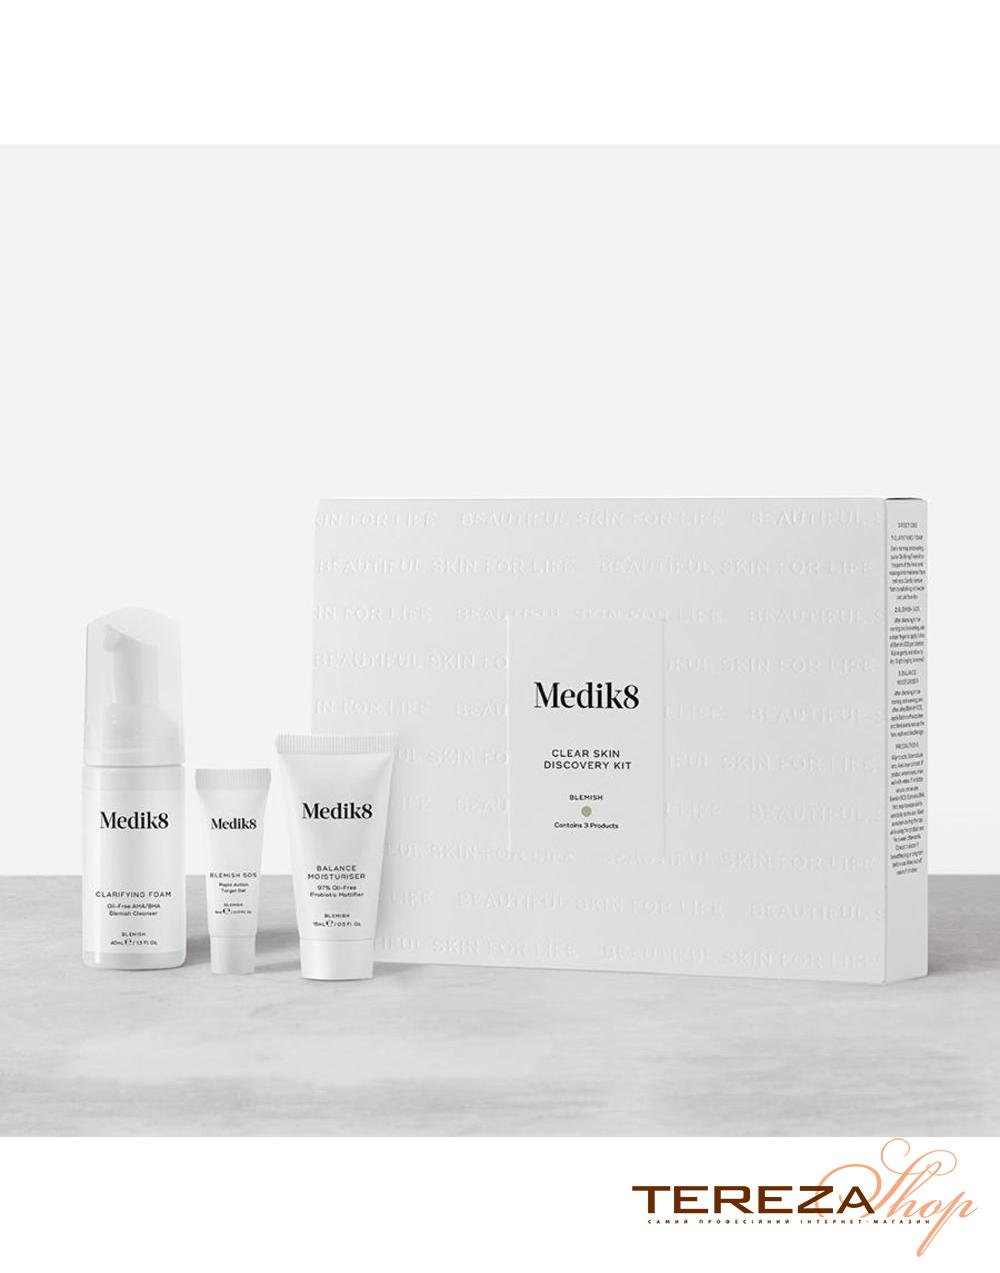 CLEAR SKIN KIT DISCOVERY MEDIK8 | Tereza Shop